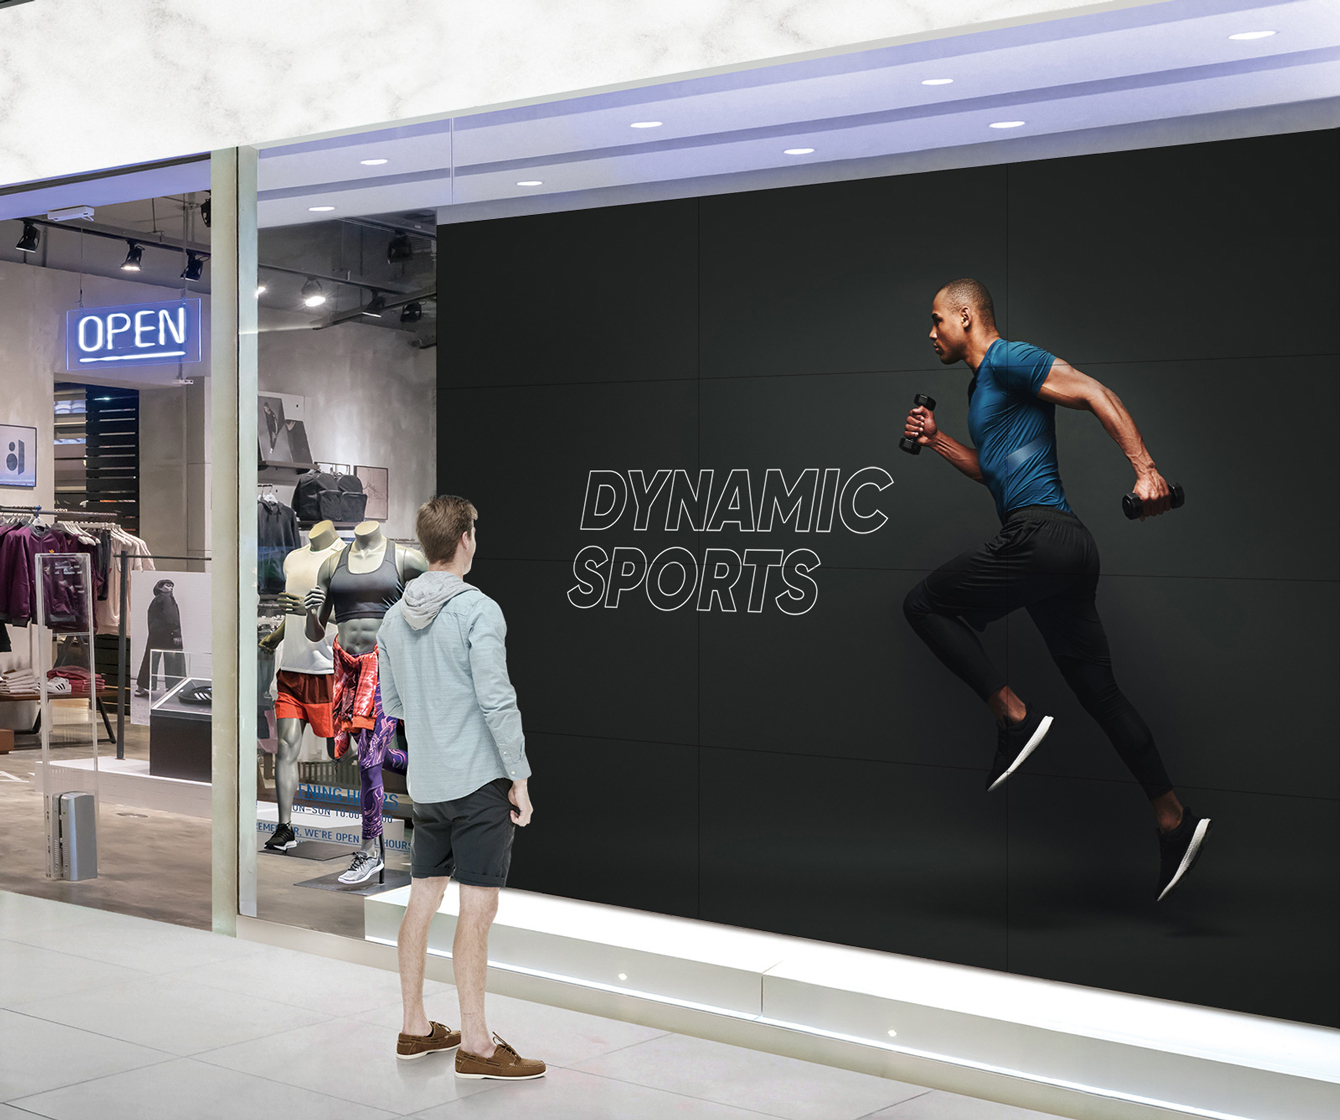 A man is looking at a big screen attached to the window of a sports store.